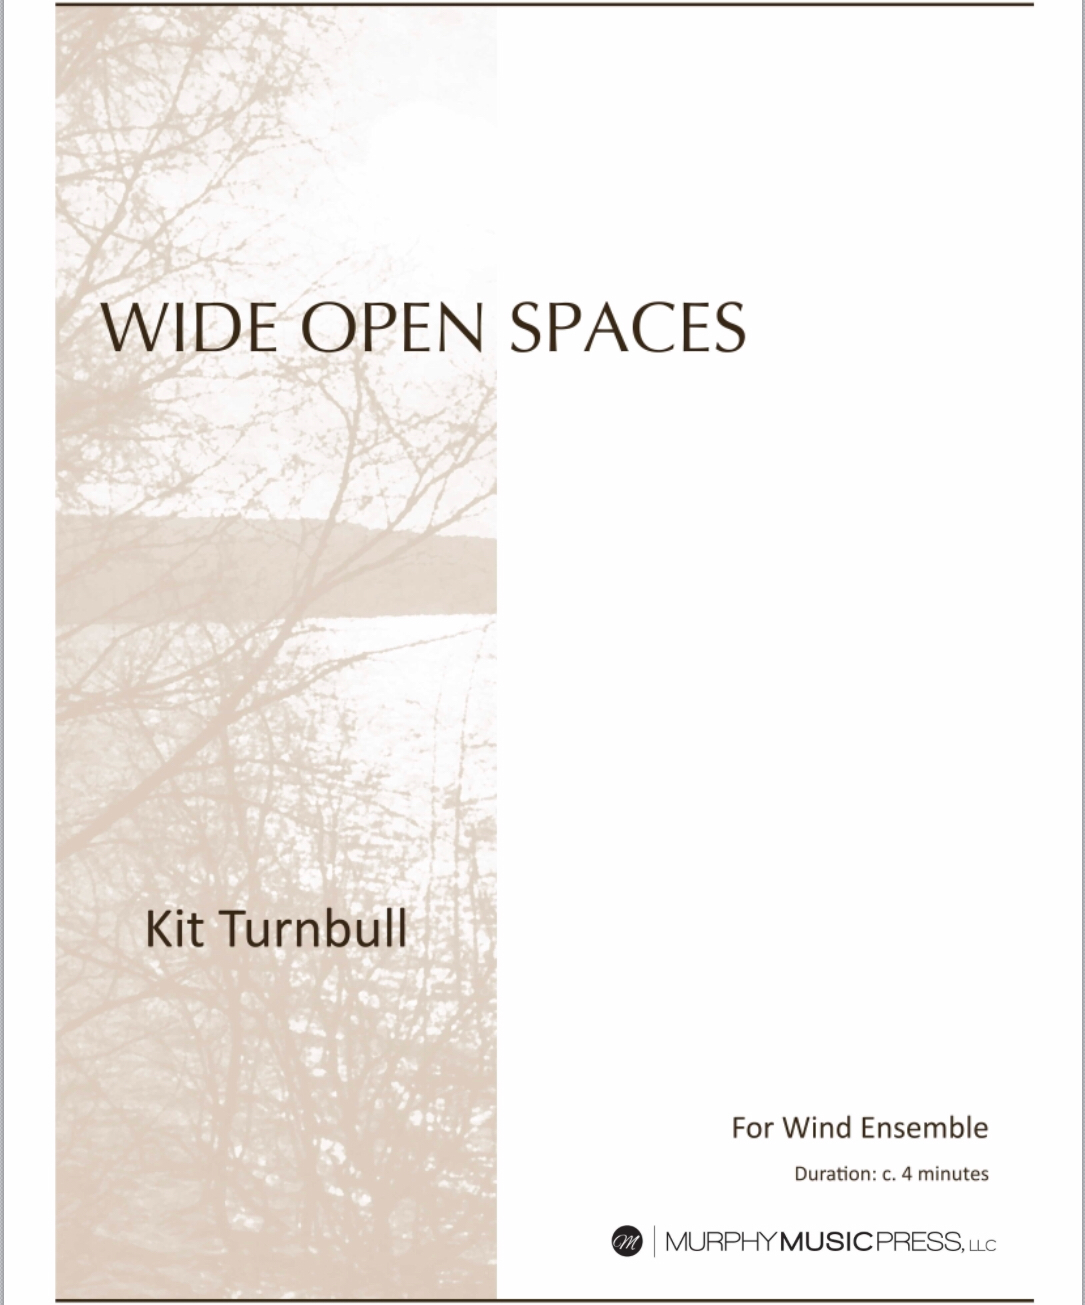 Wide Open Spaces  by Kit Turnbull